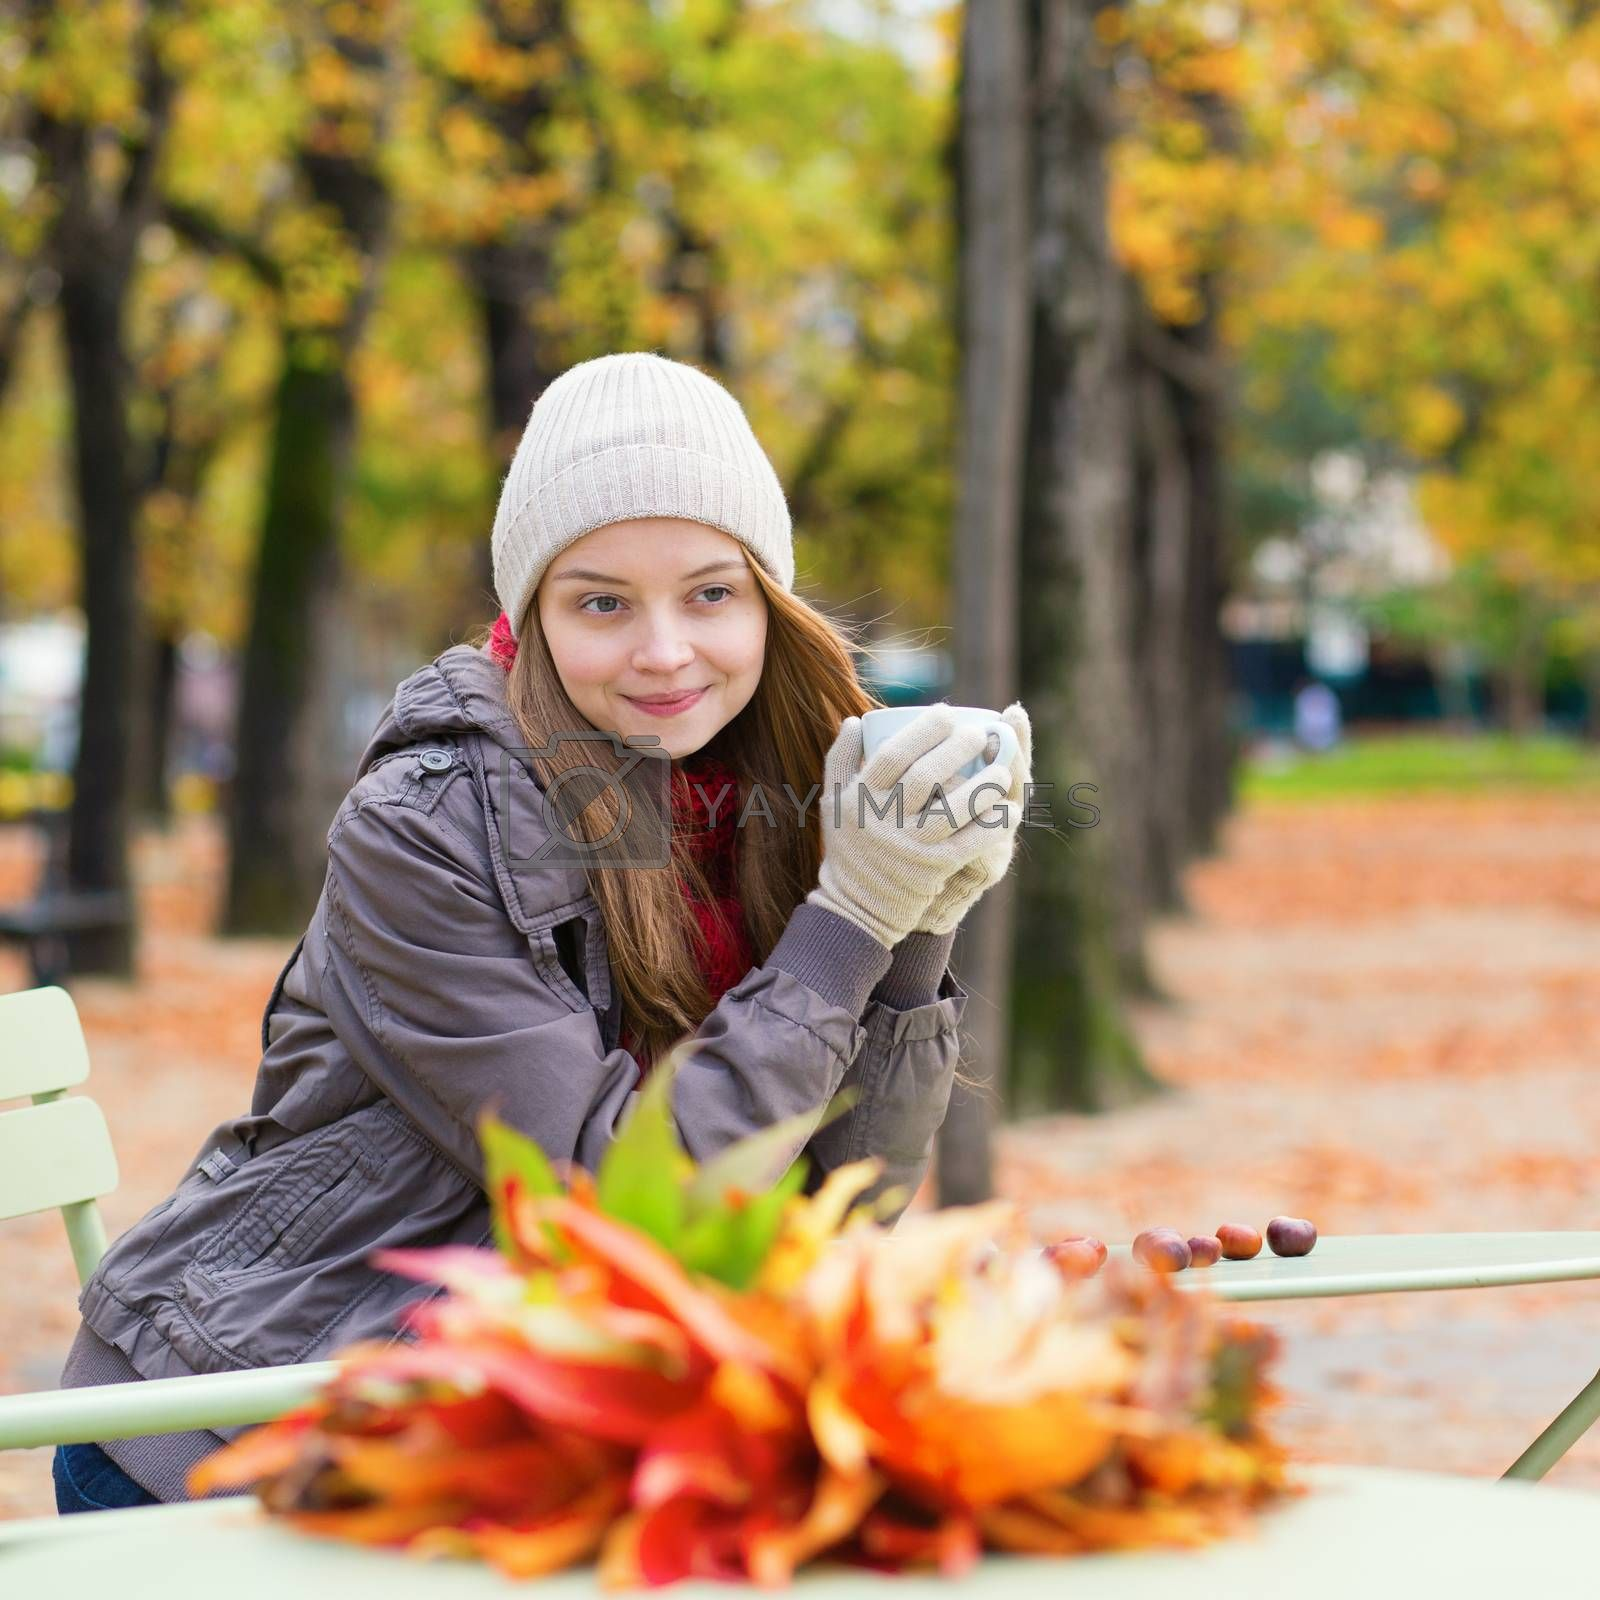 Girl drinking coffee or tea outdoors on a fall day